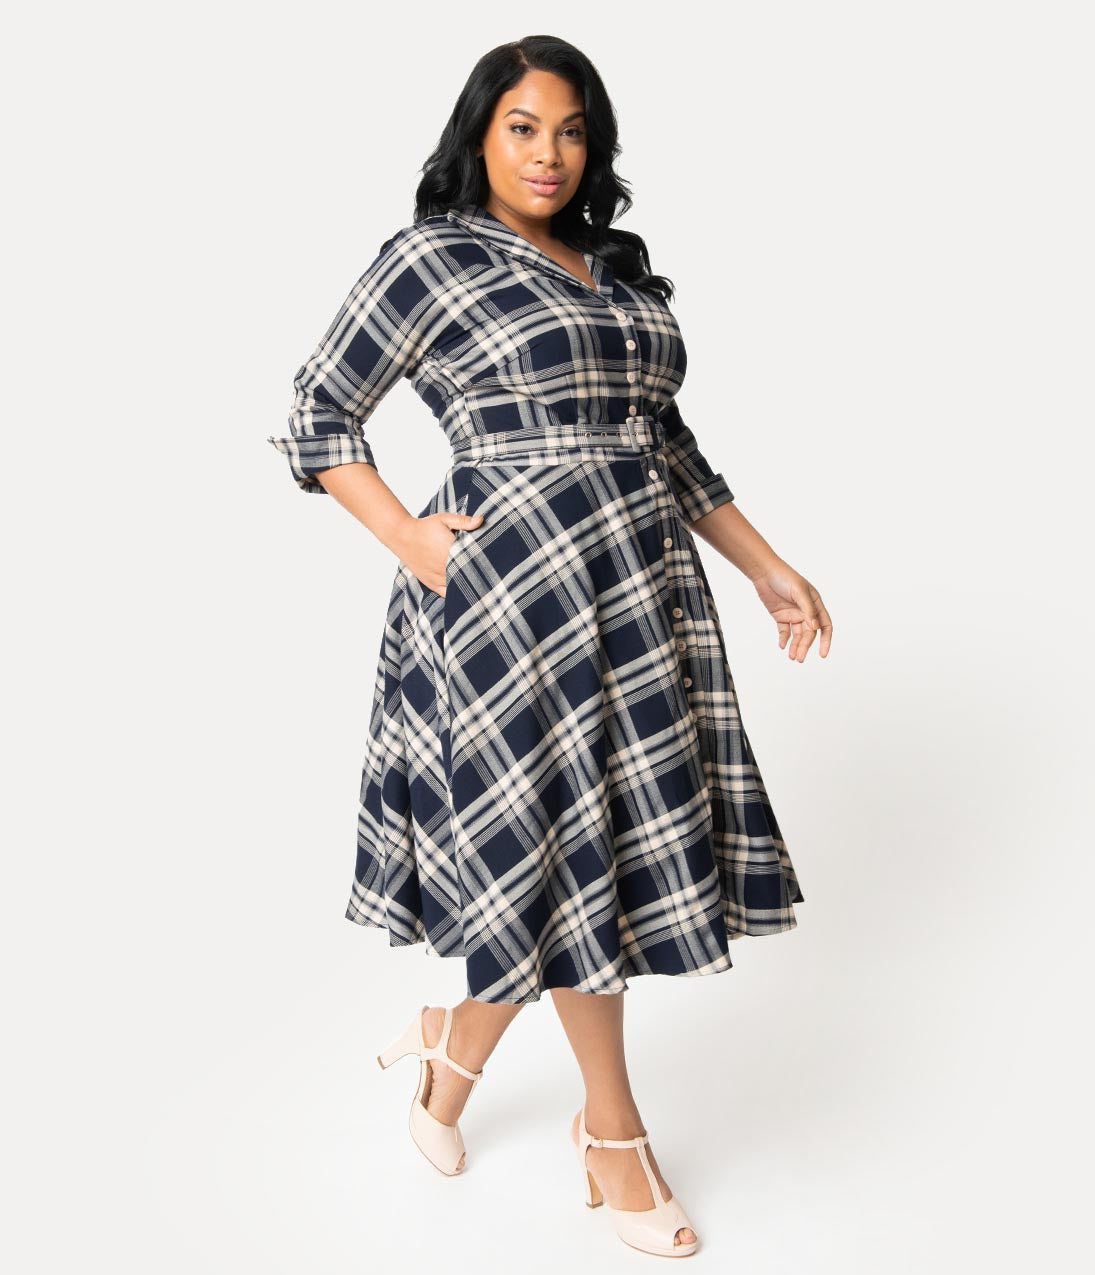 1940s Dresses | 40s Dress, Swing Dress Unique Vintage Plus Size 1950S Style Navy Blue Plaid Sleeved Brooklyn Shirtdress $89.00 AT vintagedancer.com